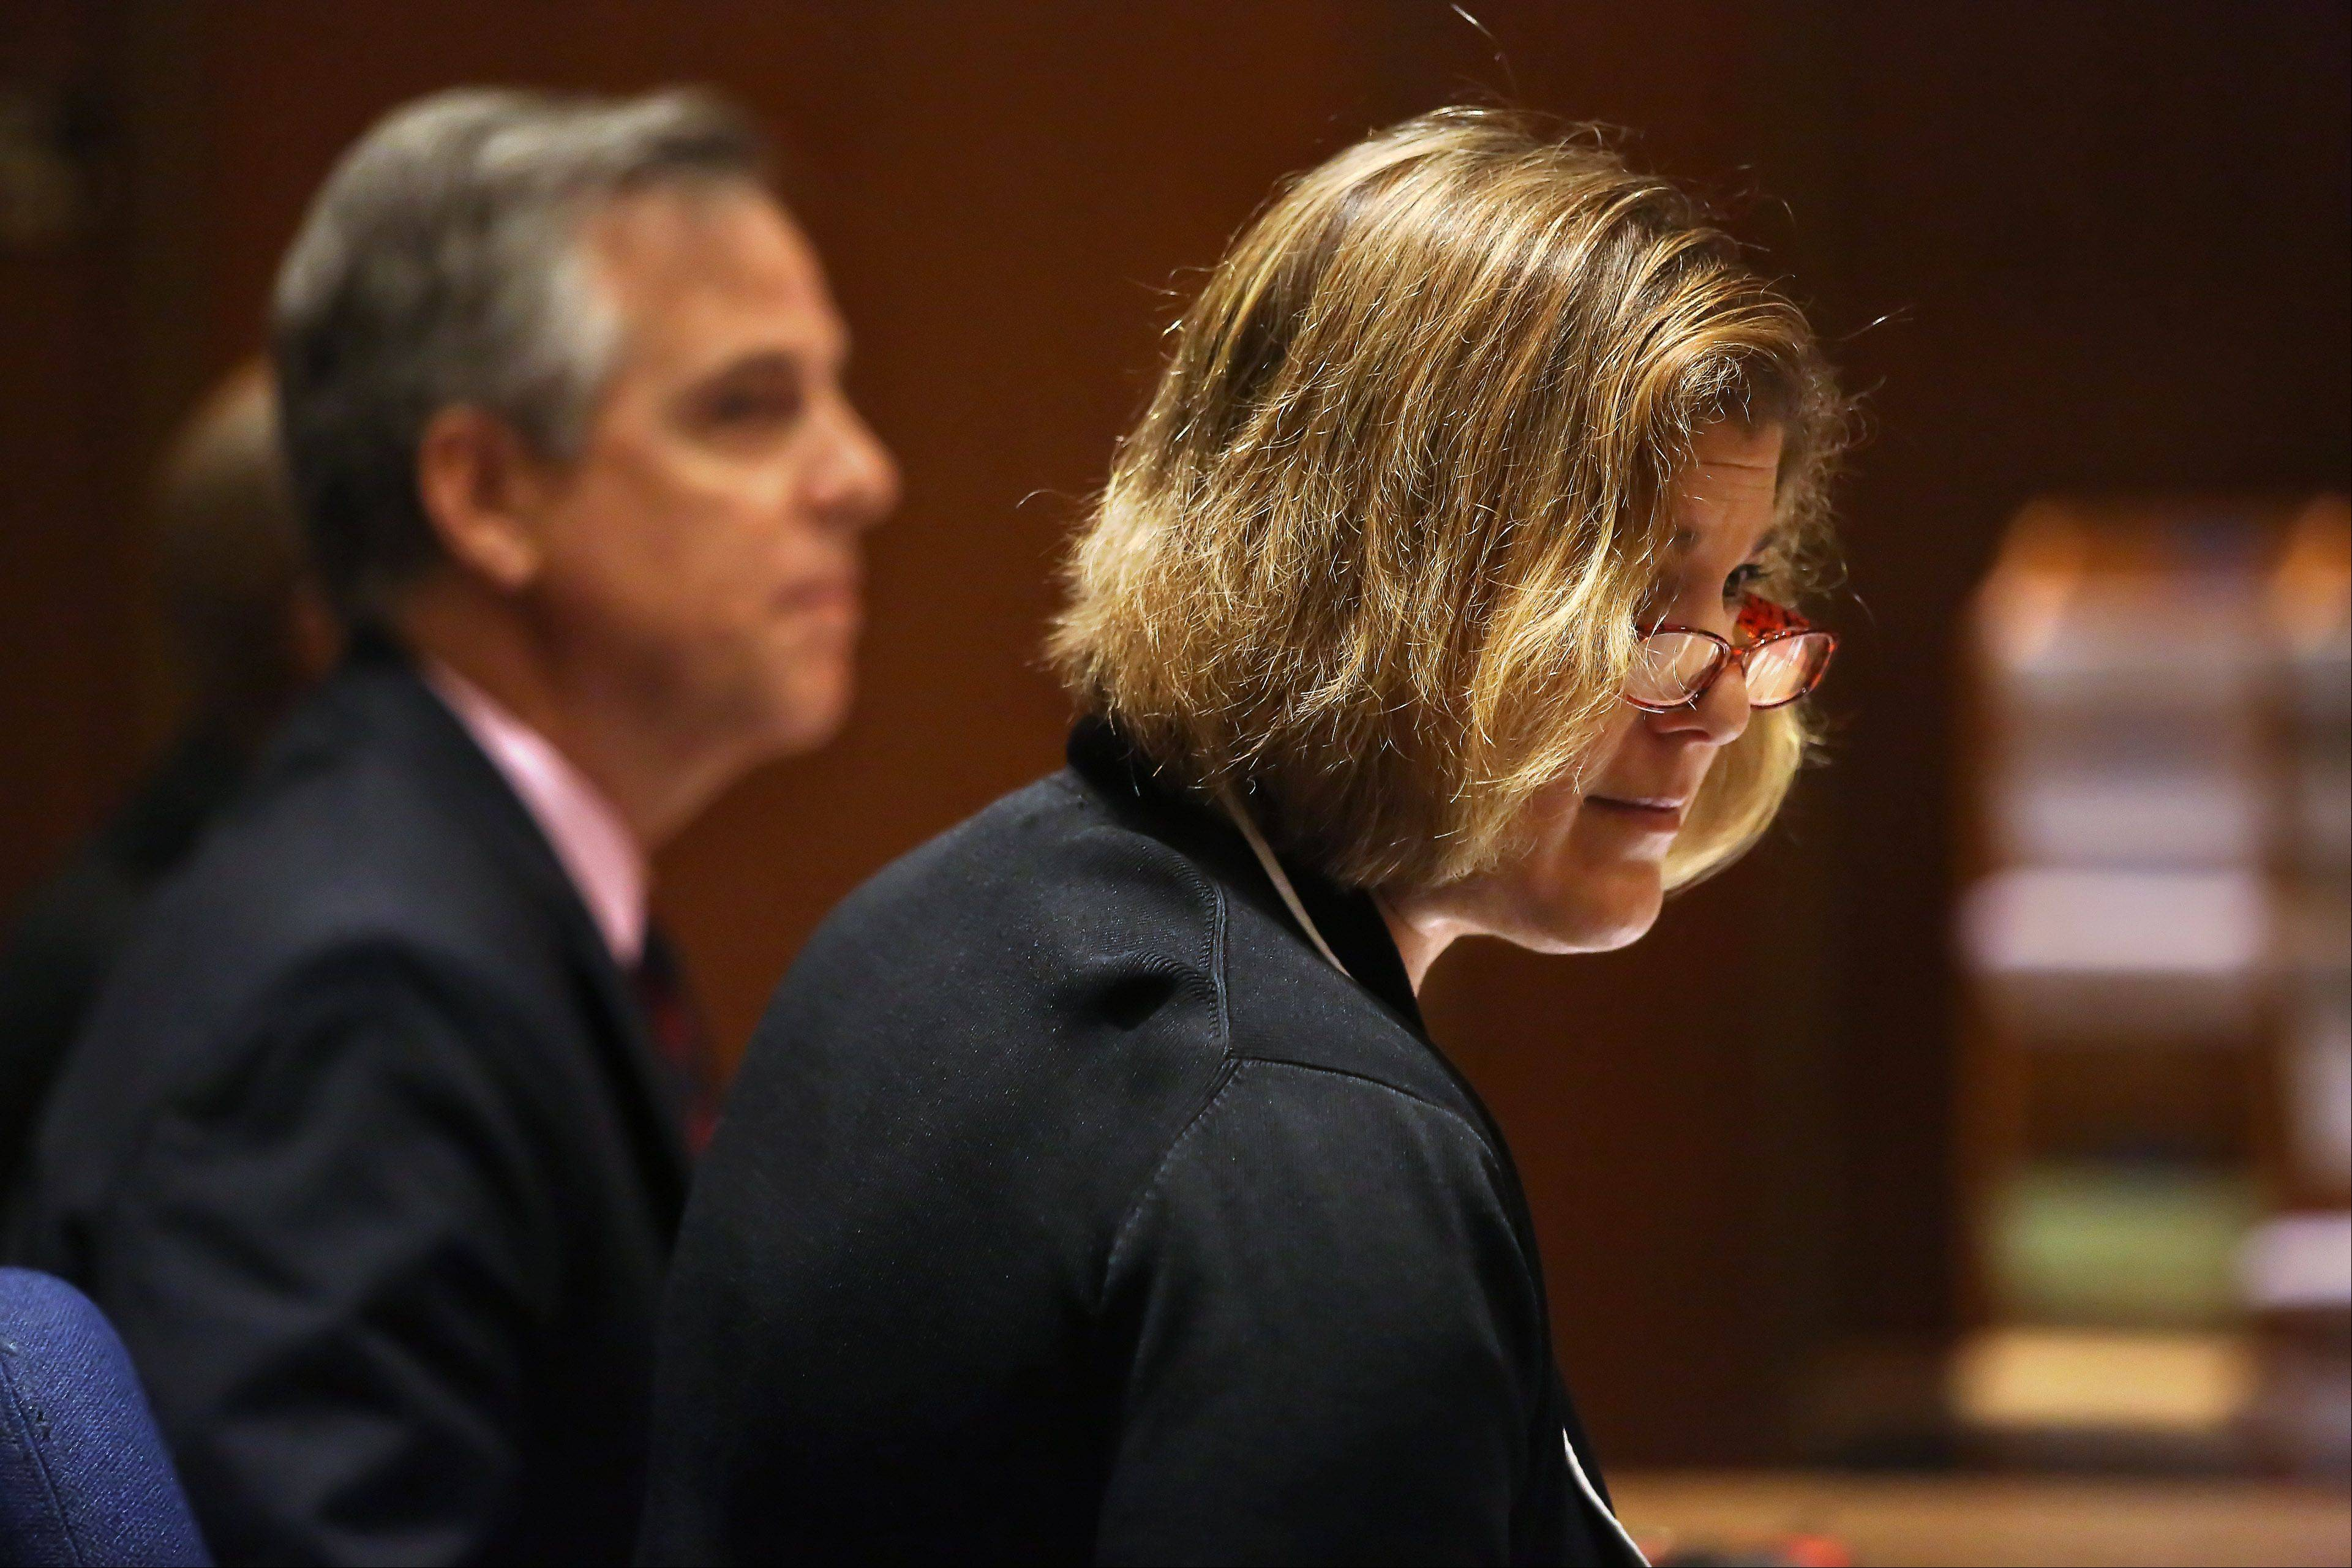 Randie Bruno, court-appointed public defender, and Keith Grant, chief of special defense for the Lake County public defender's office, listen to arguments during the murder trial of Montago Suggs of Kenosha, Wis., Tuesday at the Lake County courthouse in Waukegan. Suggs is accused of killing Melinda Morrell of Round Lake Park during a robbery at a check cashing store in Waukegan in 2007.